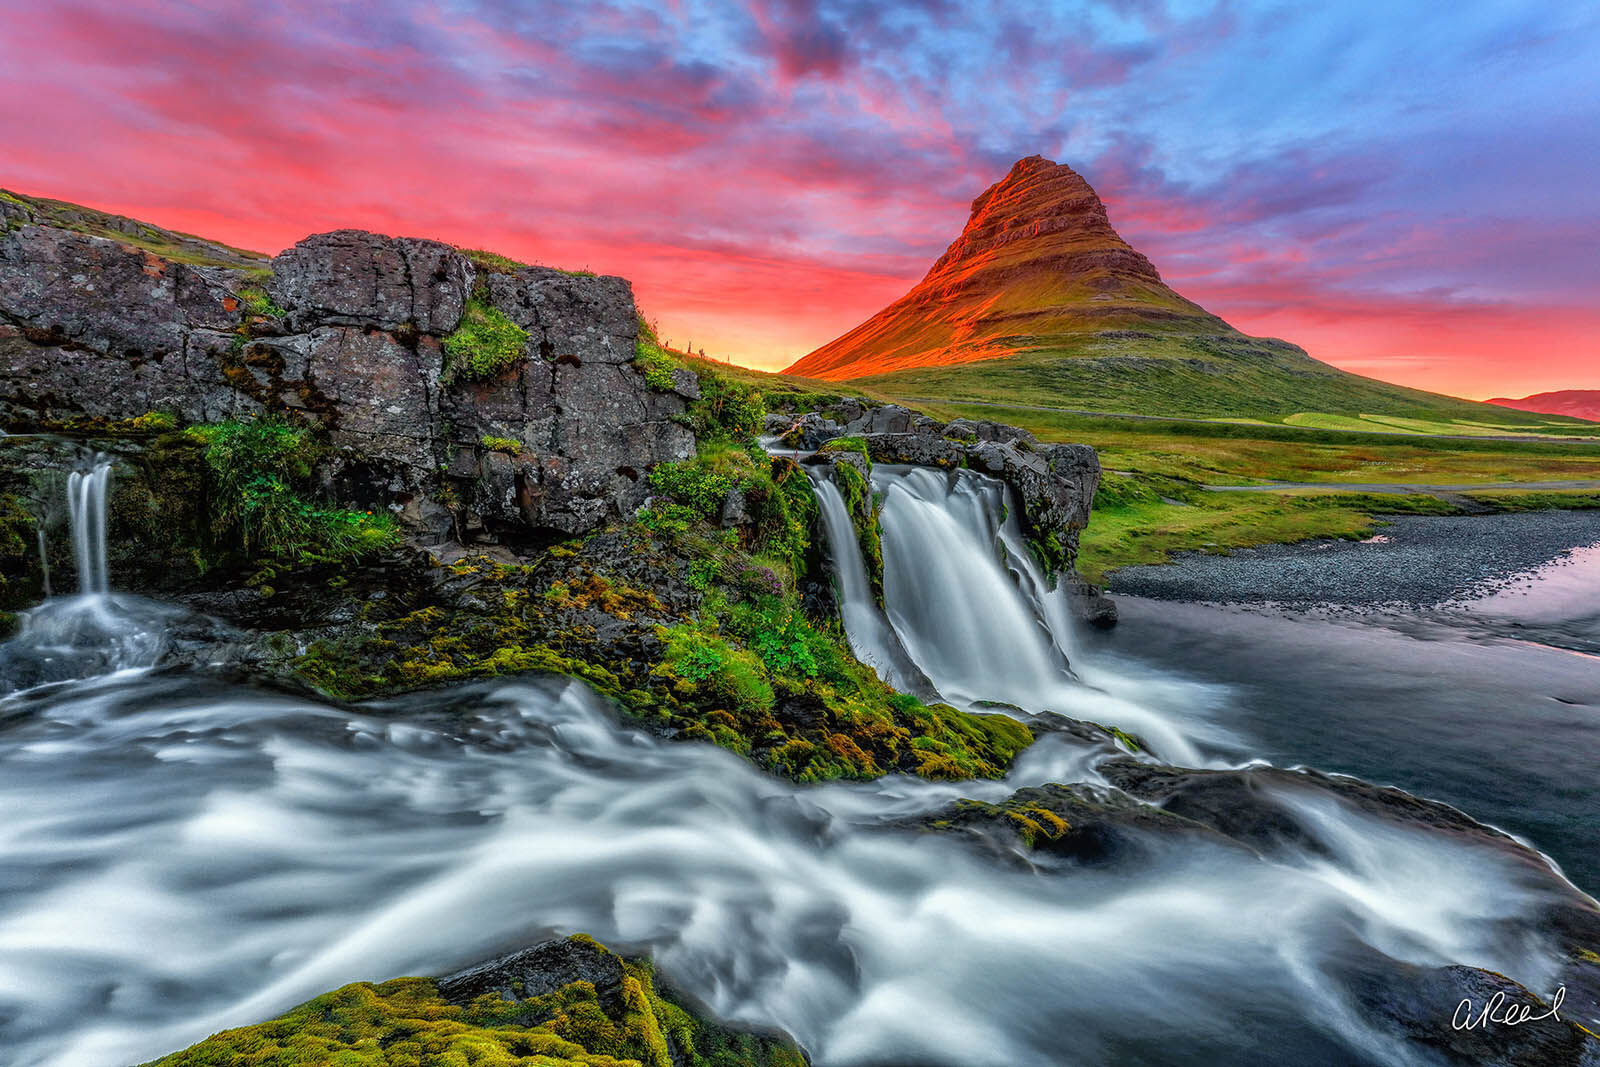 Kirkjufell, Fine Art, Waterfall, Mountain, Iceland, Limited Edition, Church, Arrowhead, Game Of Thrones,, photo